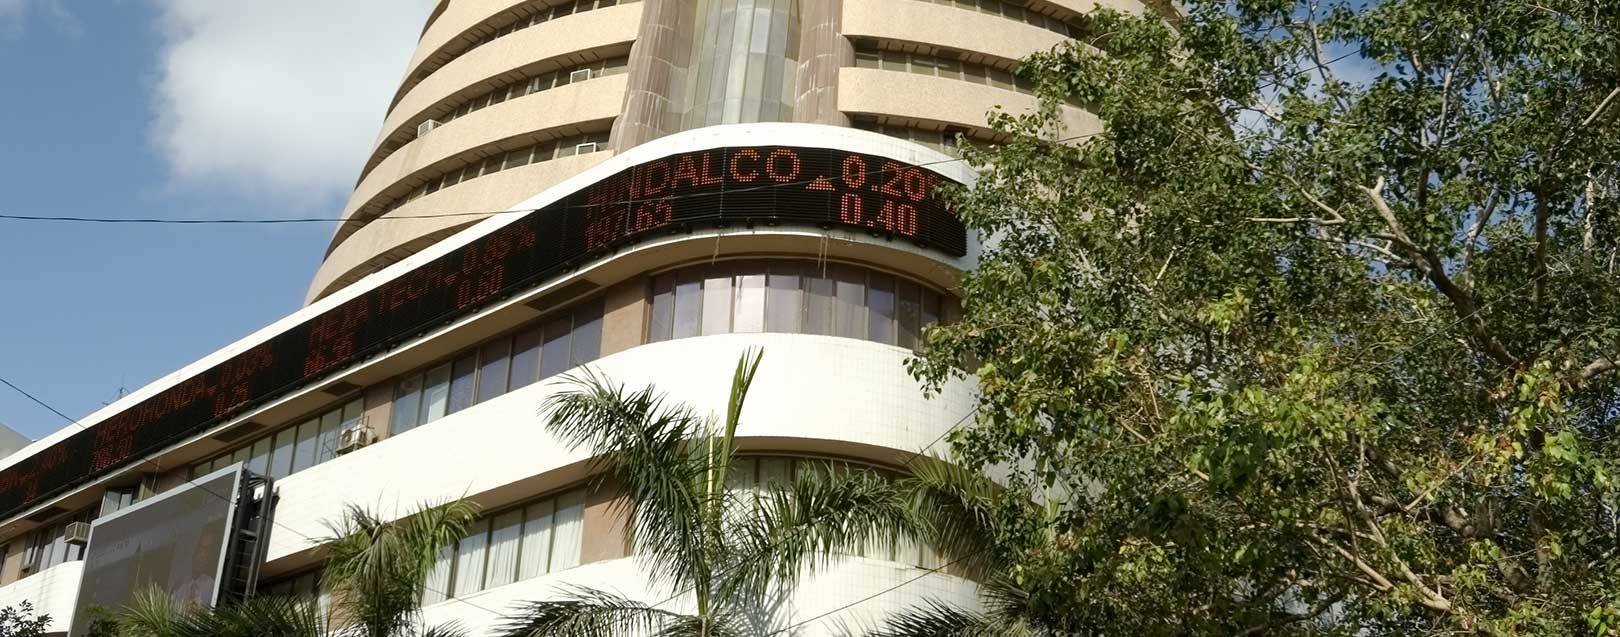 Nifty takes a leap, hits record 9,123 on BJP's poll success